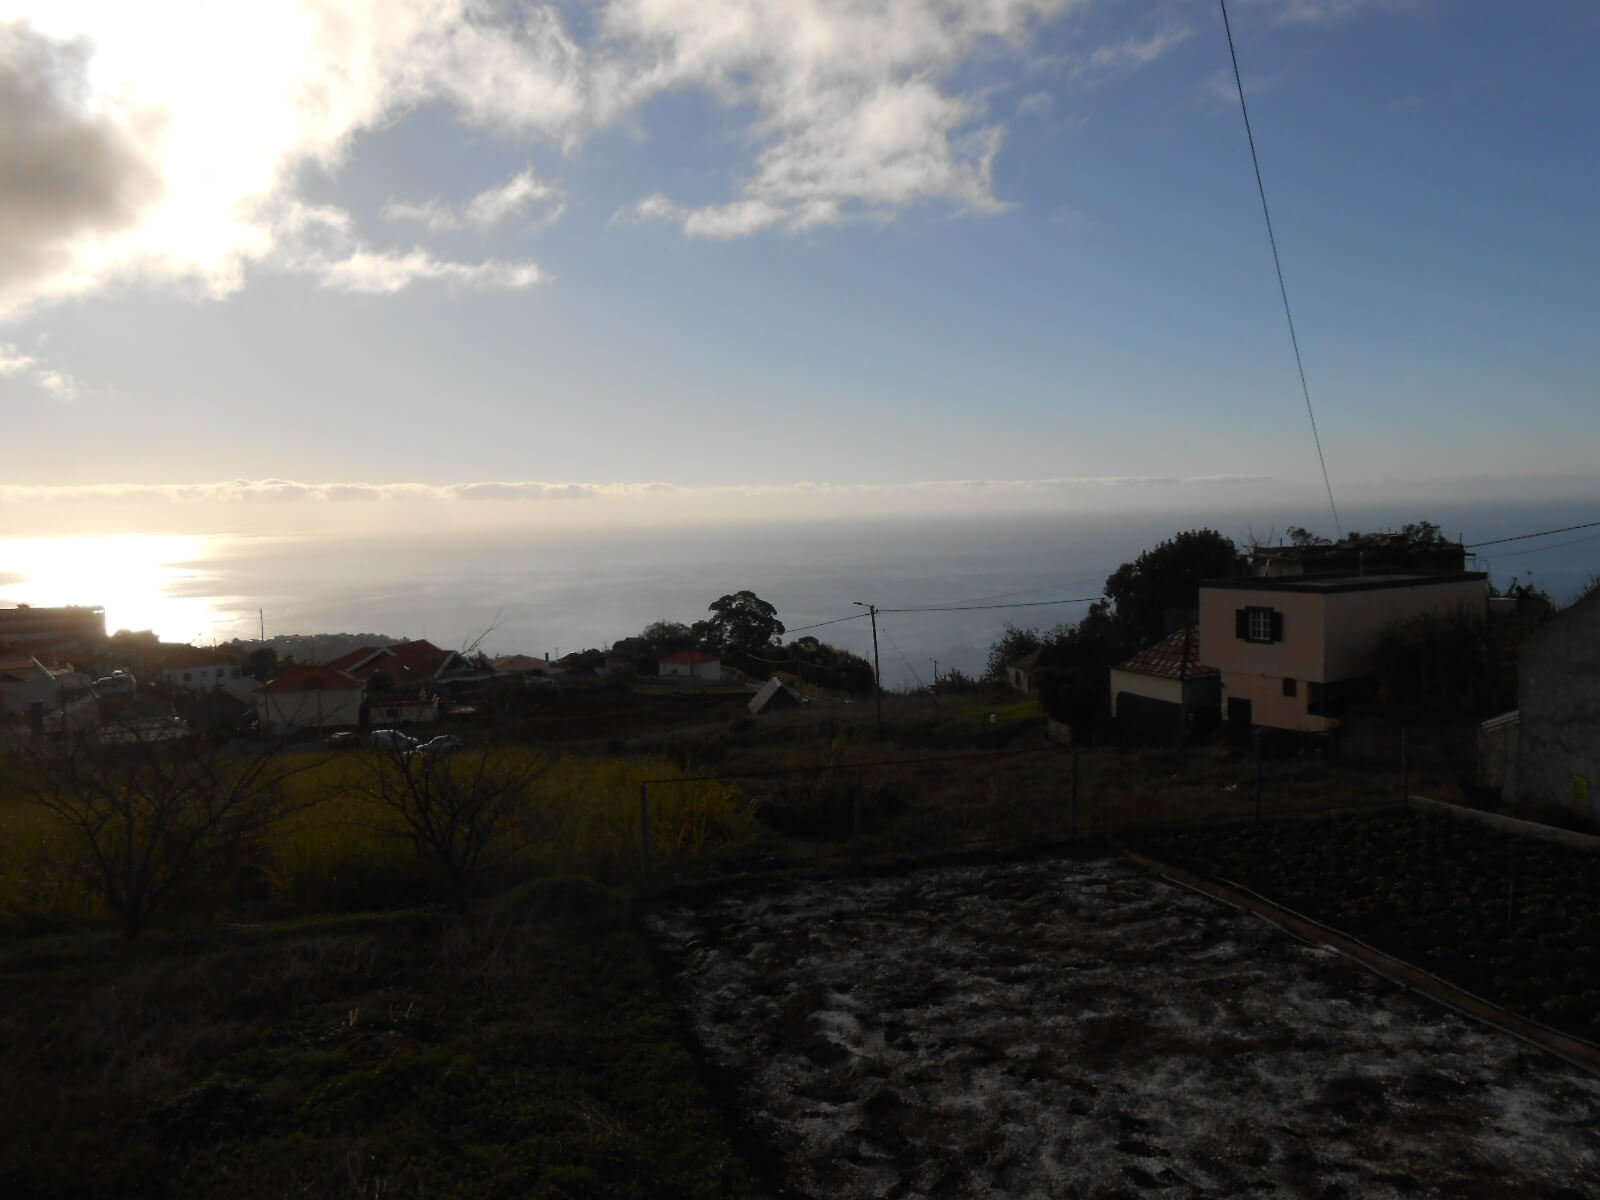 Typical Maderian T2 House in Natural Stones of 60m2 to Renovate, Ideal for a Project of Holyday Home with 640 m2 of Land and Sea View in Ponta do Sol.